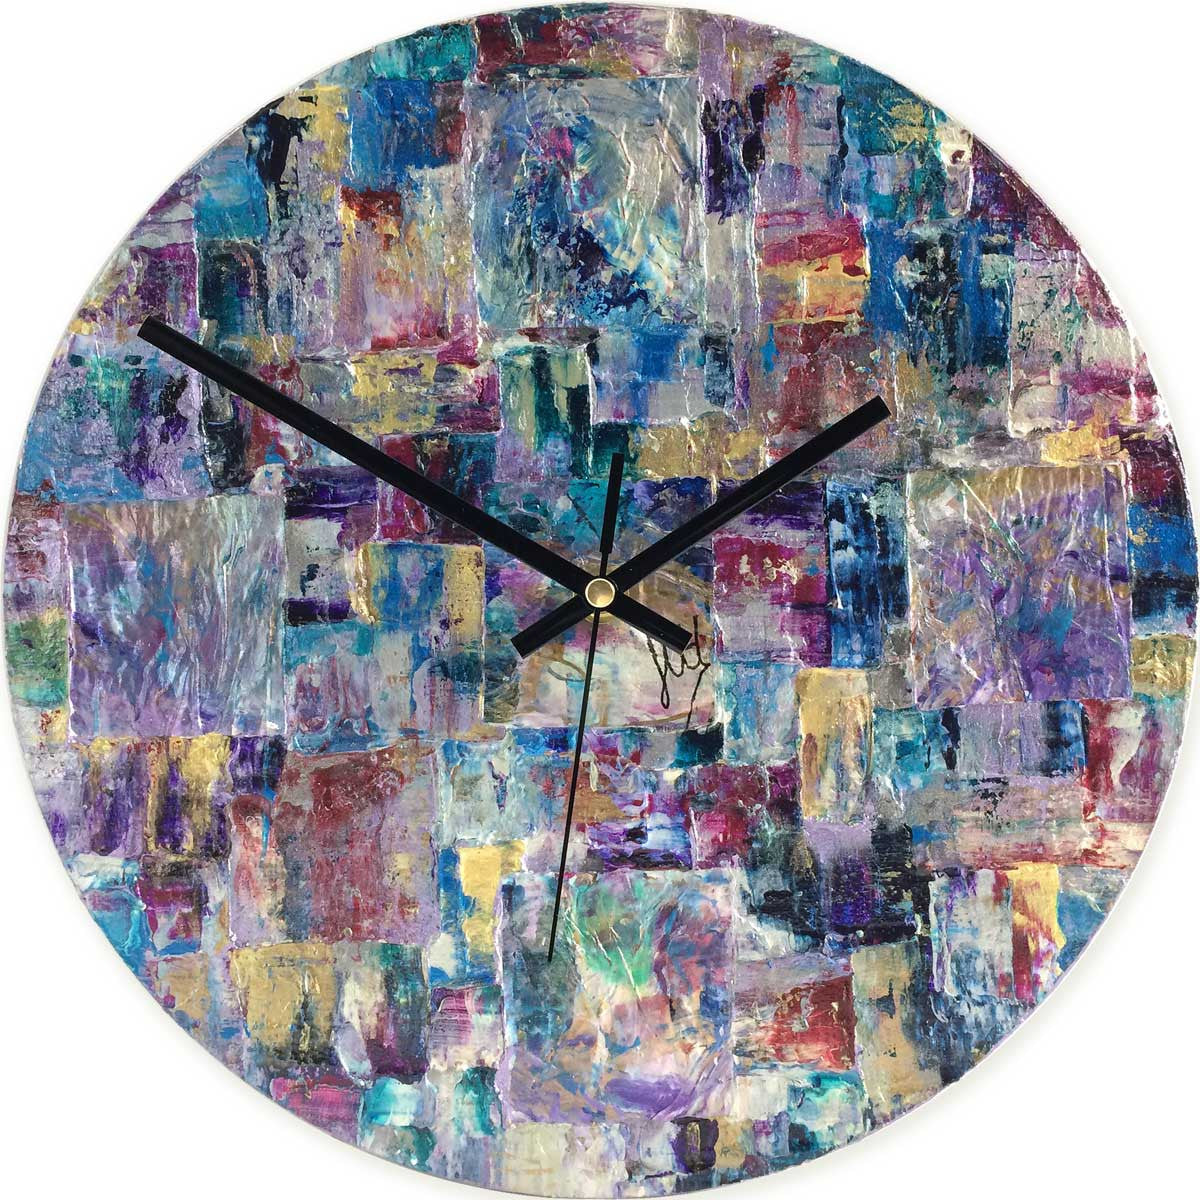 Round 30cm abstract wall clock - JLH30ROU2